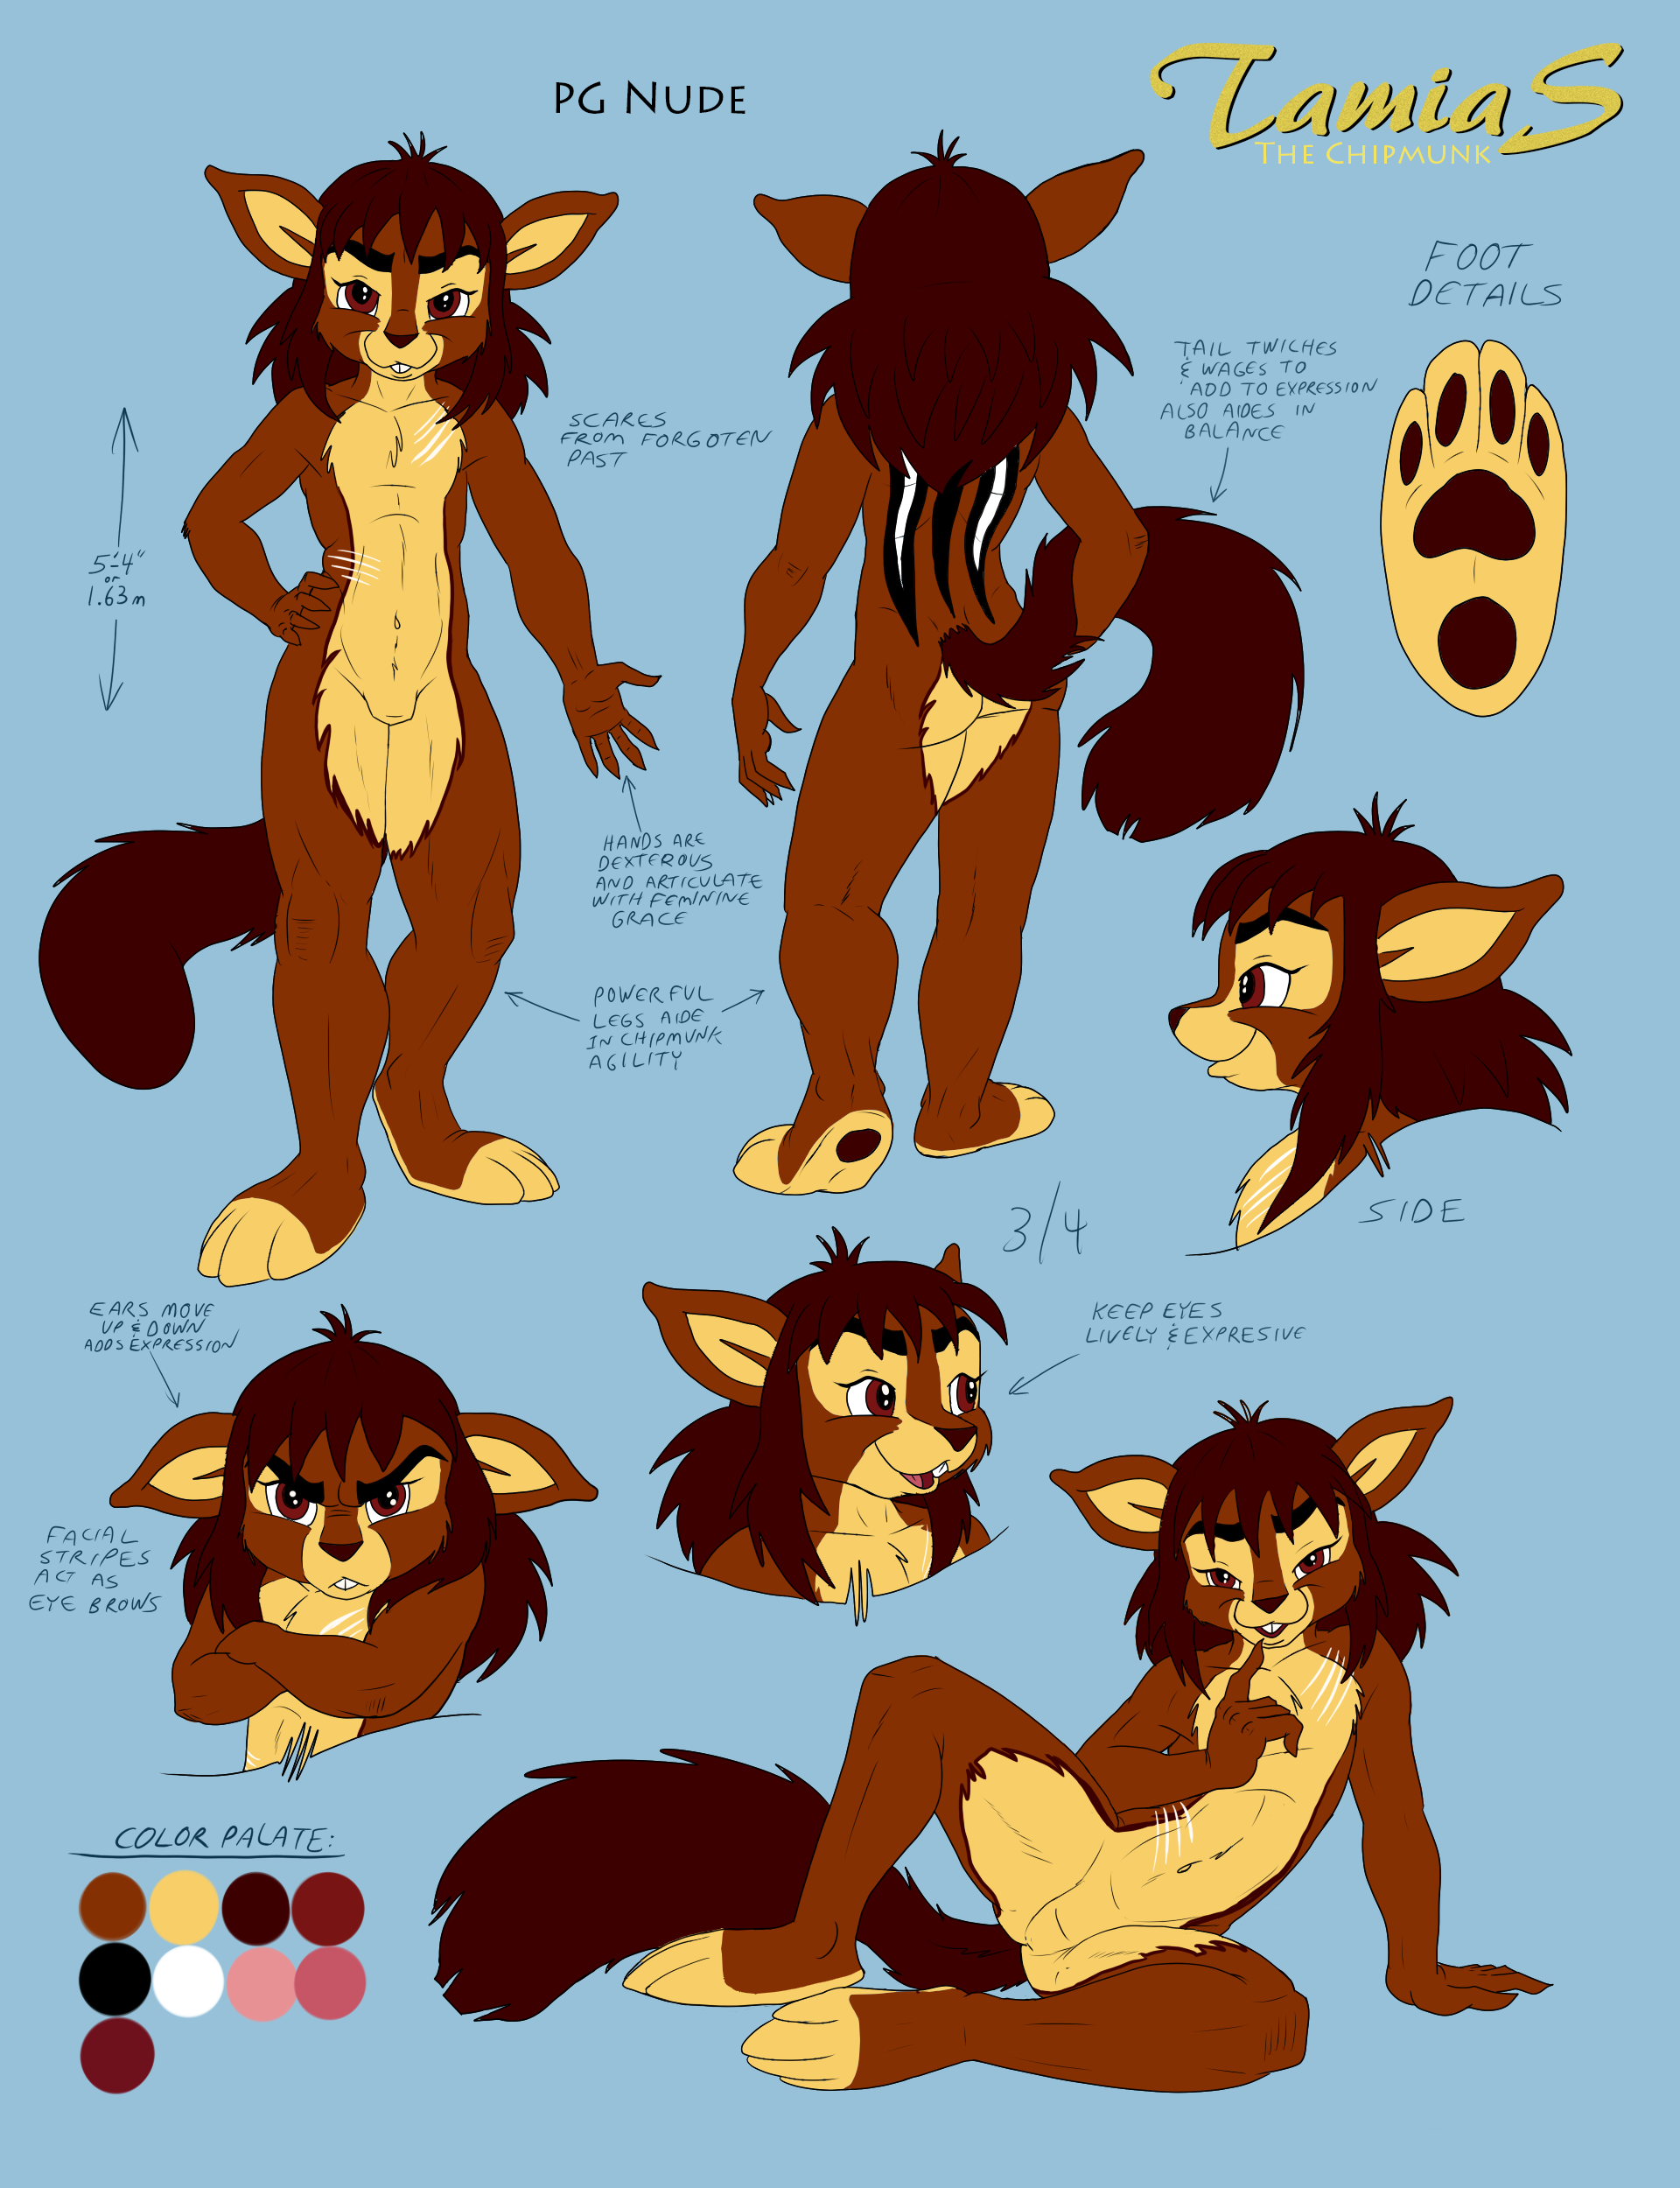 Tamias the Chipmunk PG Nude Reference Sheet by tamias6 on DeviantArt.